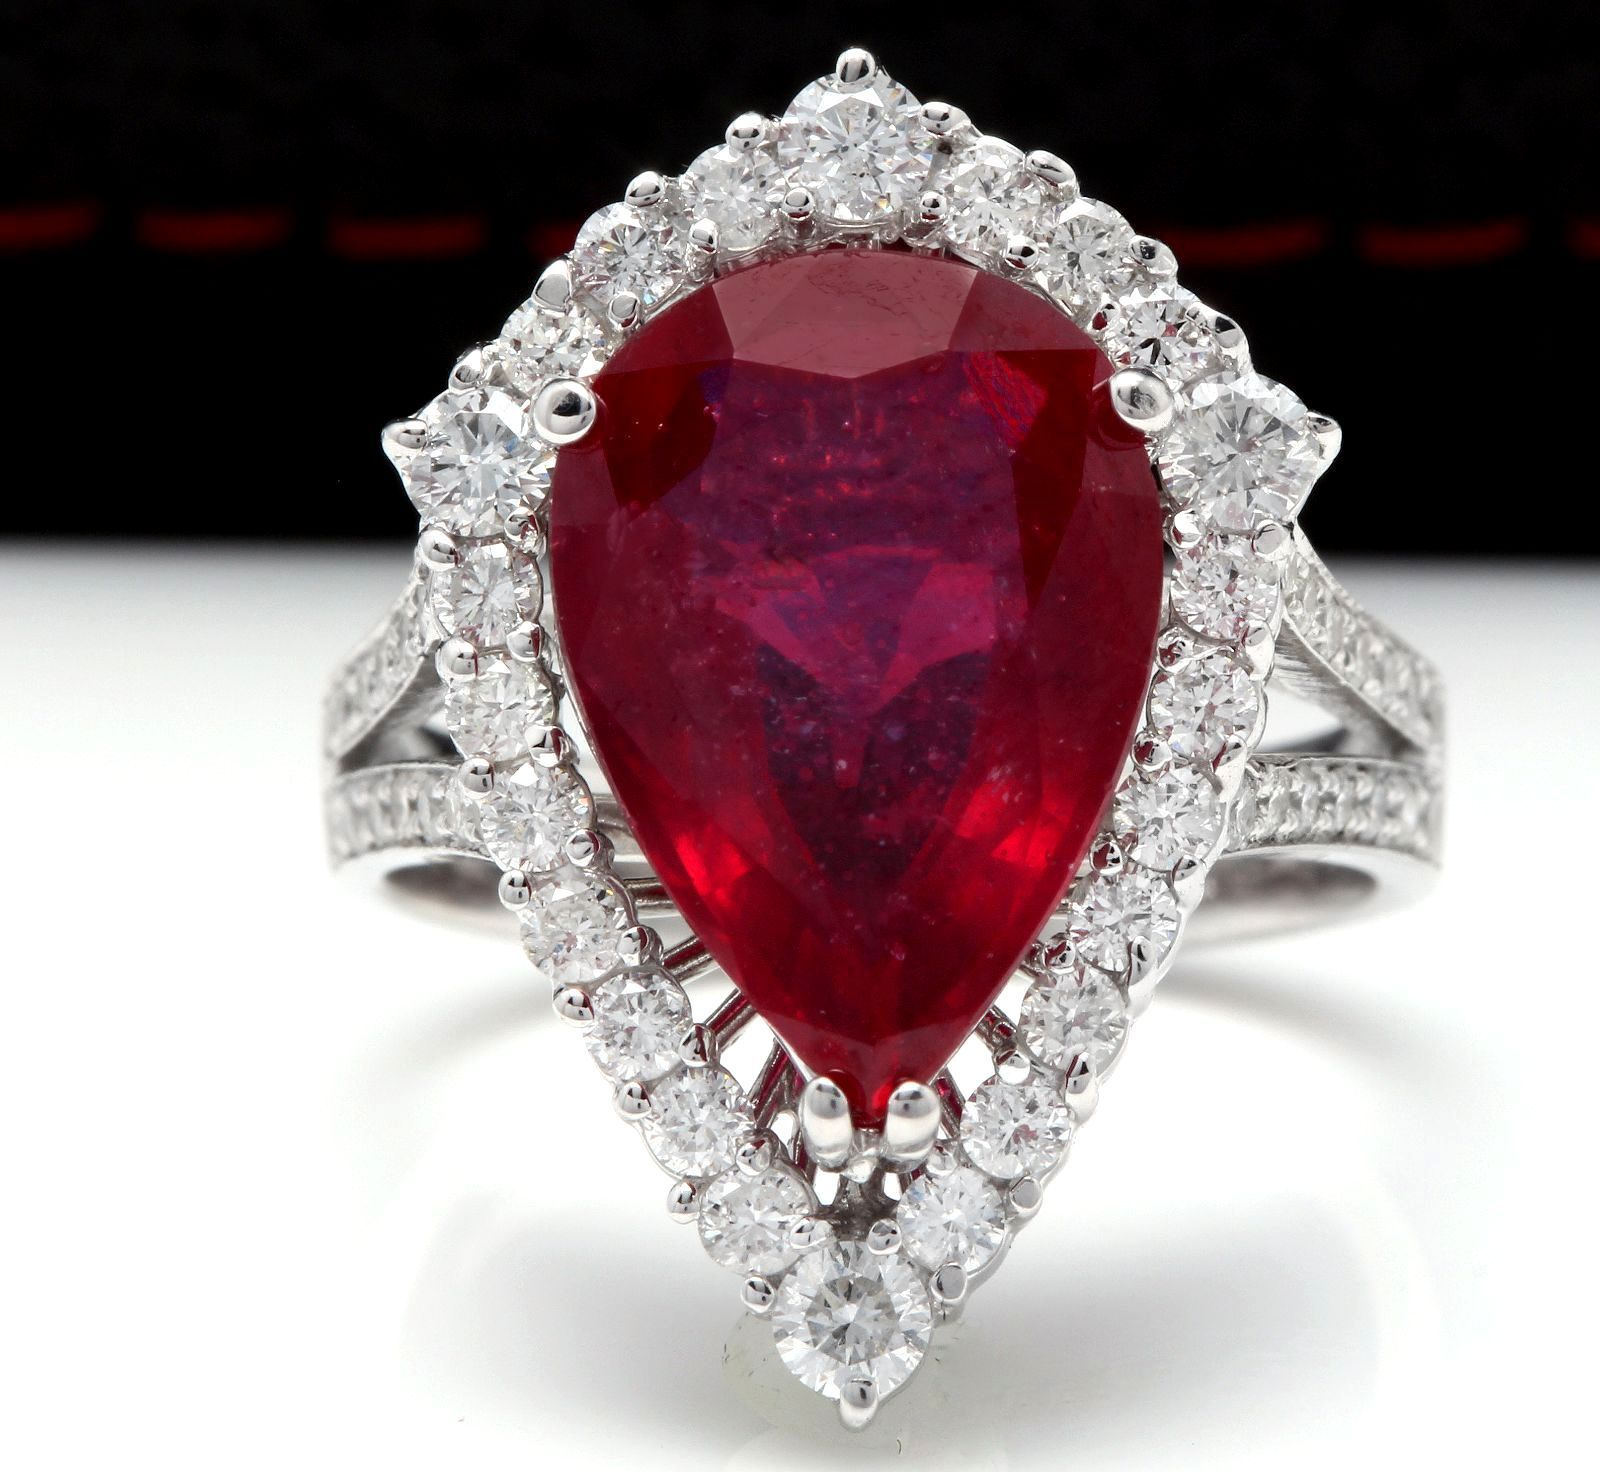 ruby la best diamond natural fresh idea engagement rings carat ring wedding s banque amp of